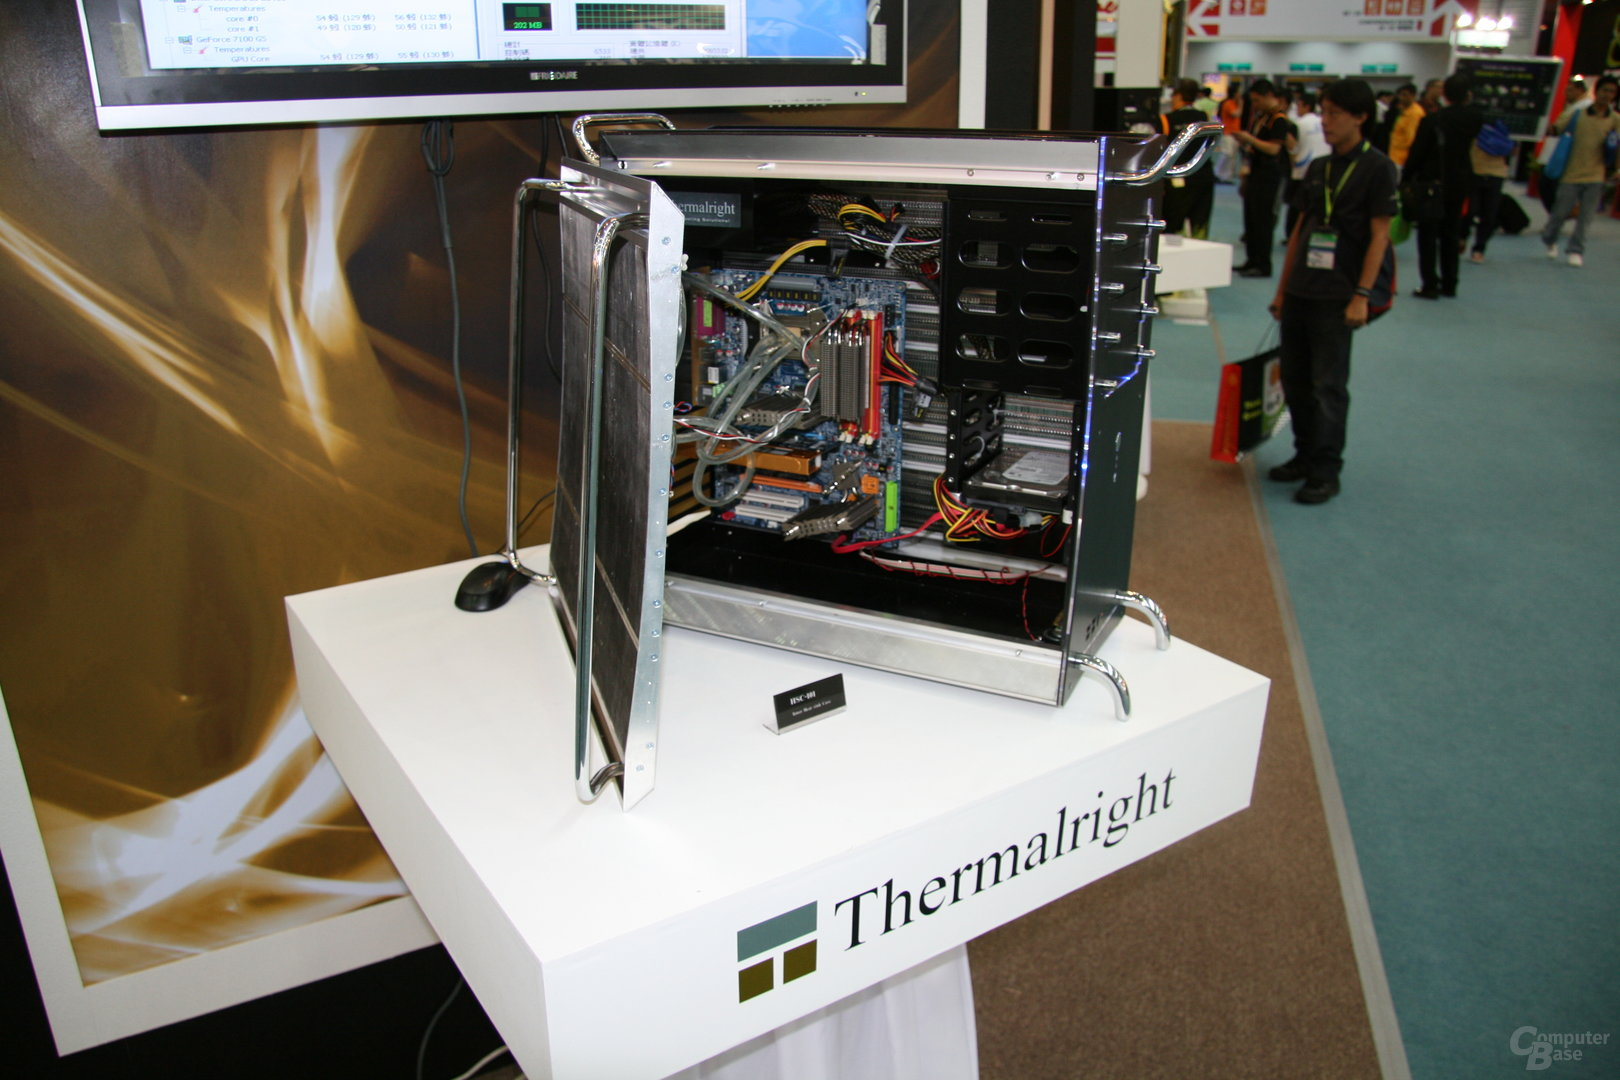 Thermalright HSC-101